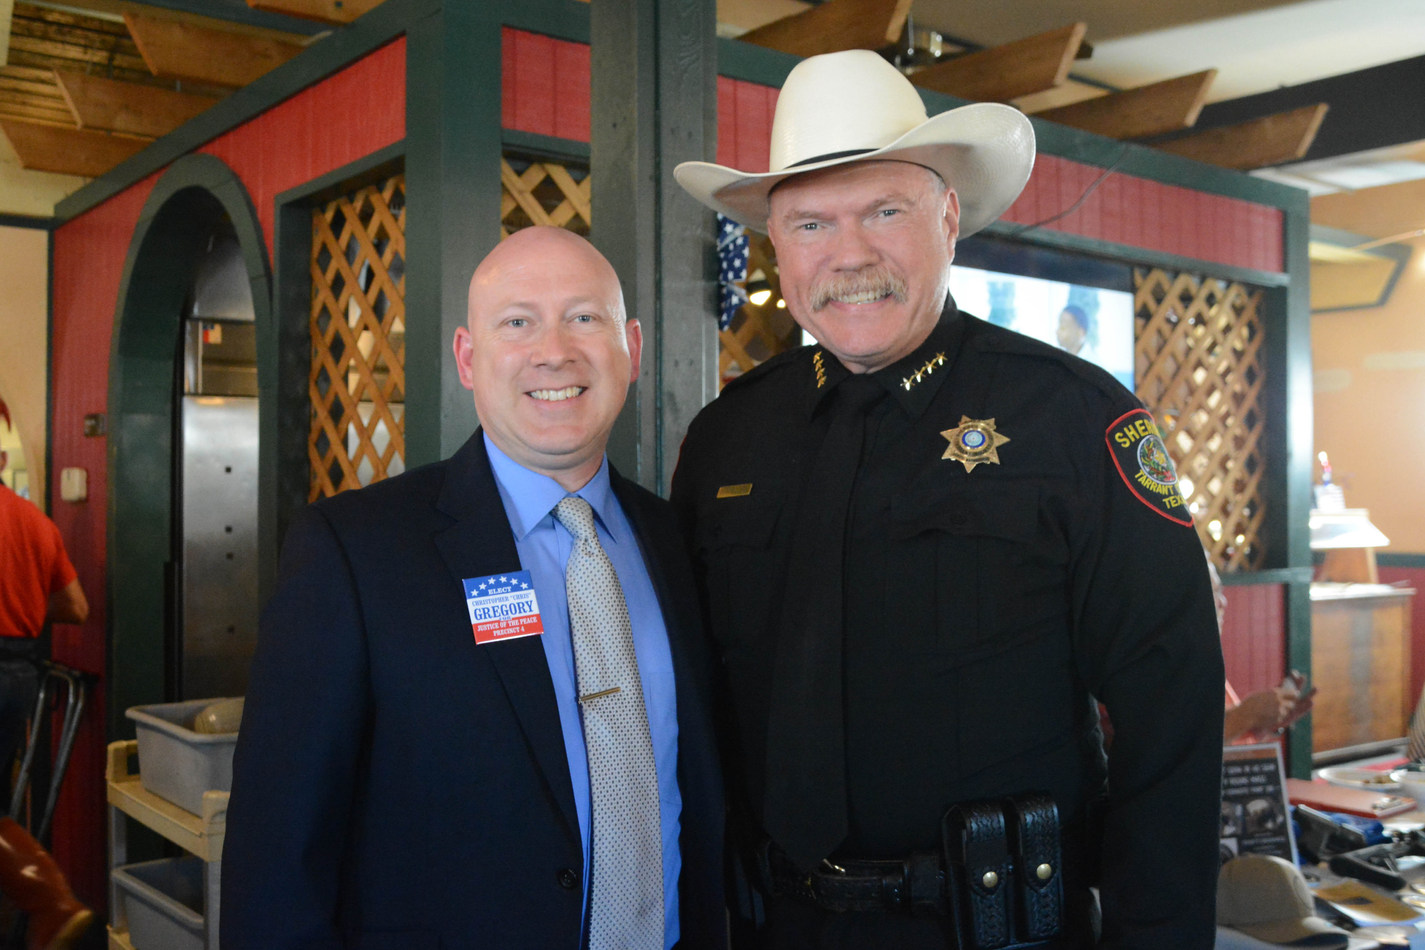 Judge Christopher Gregory and Tarrant County Sheriff Bill Waybourn